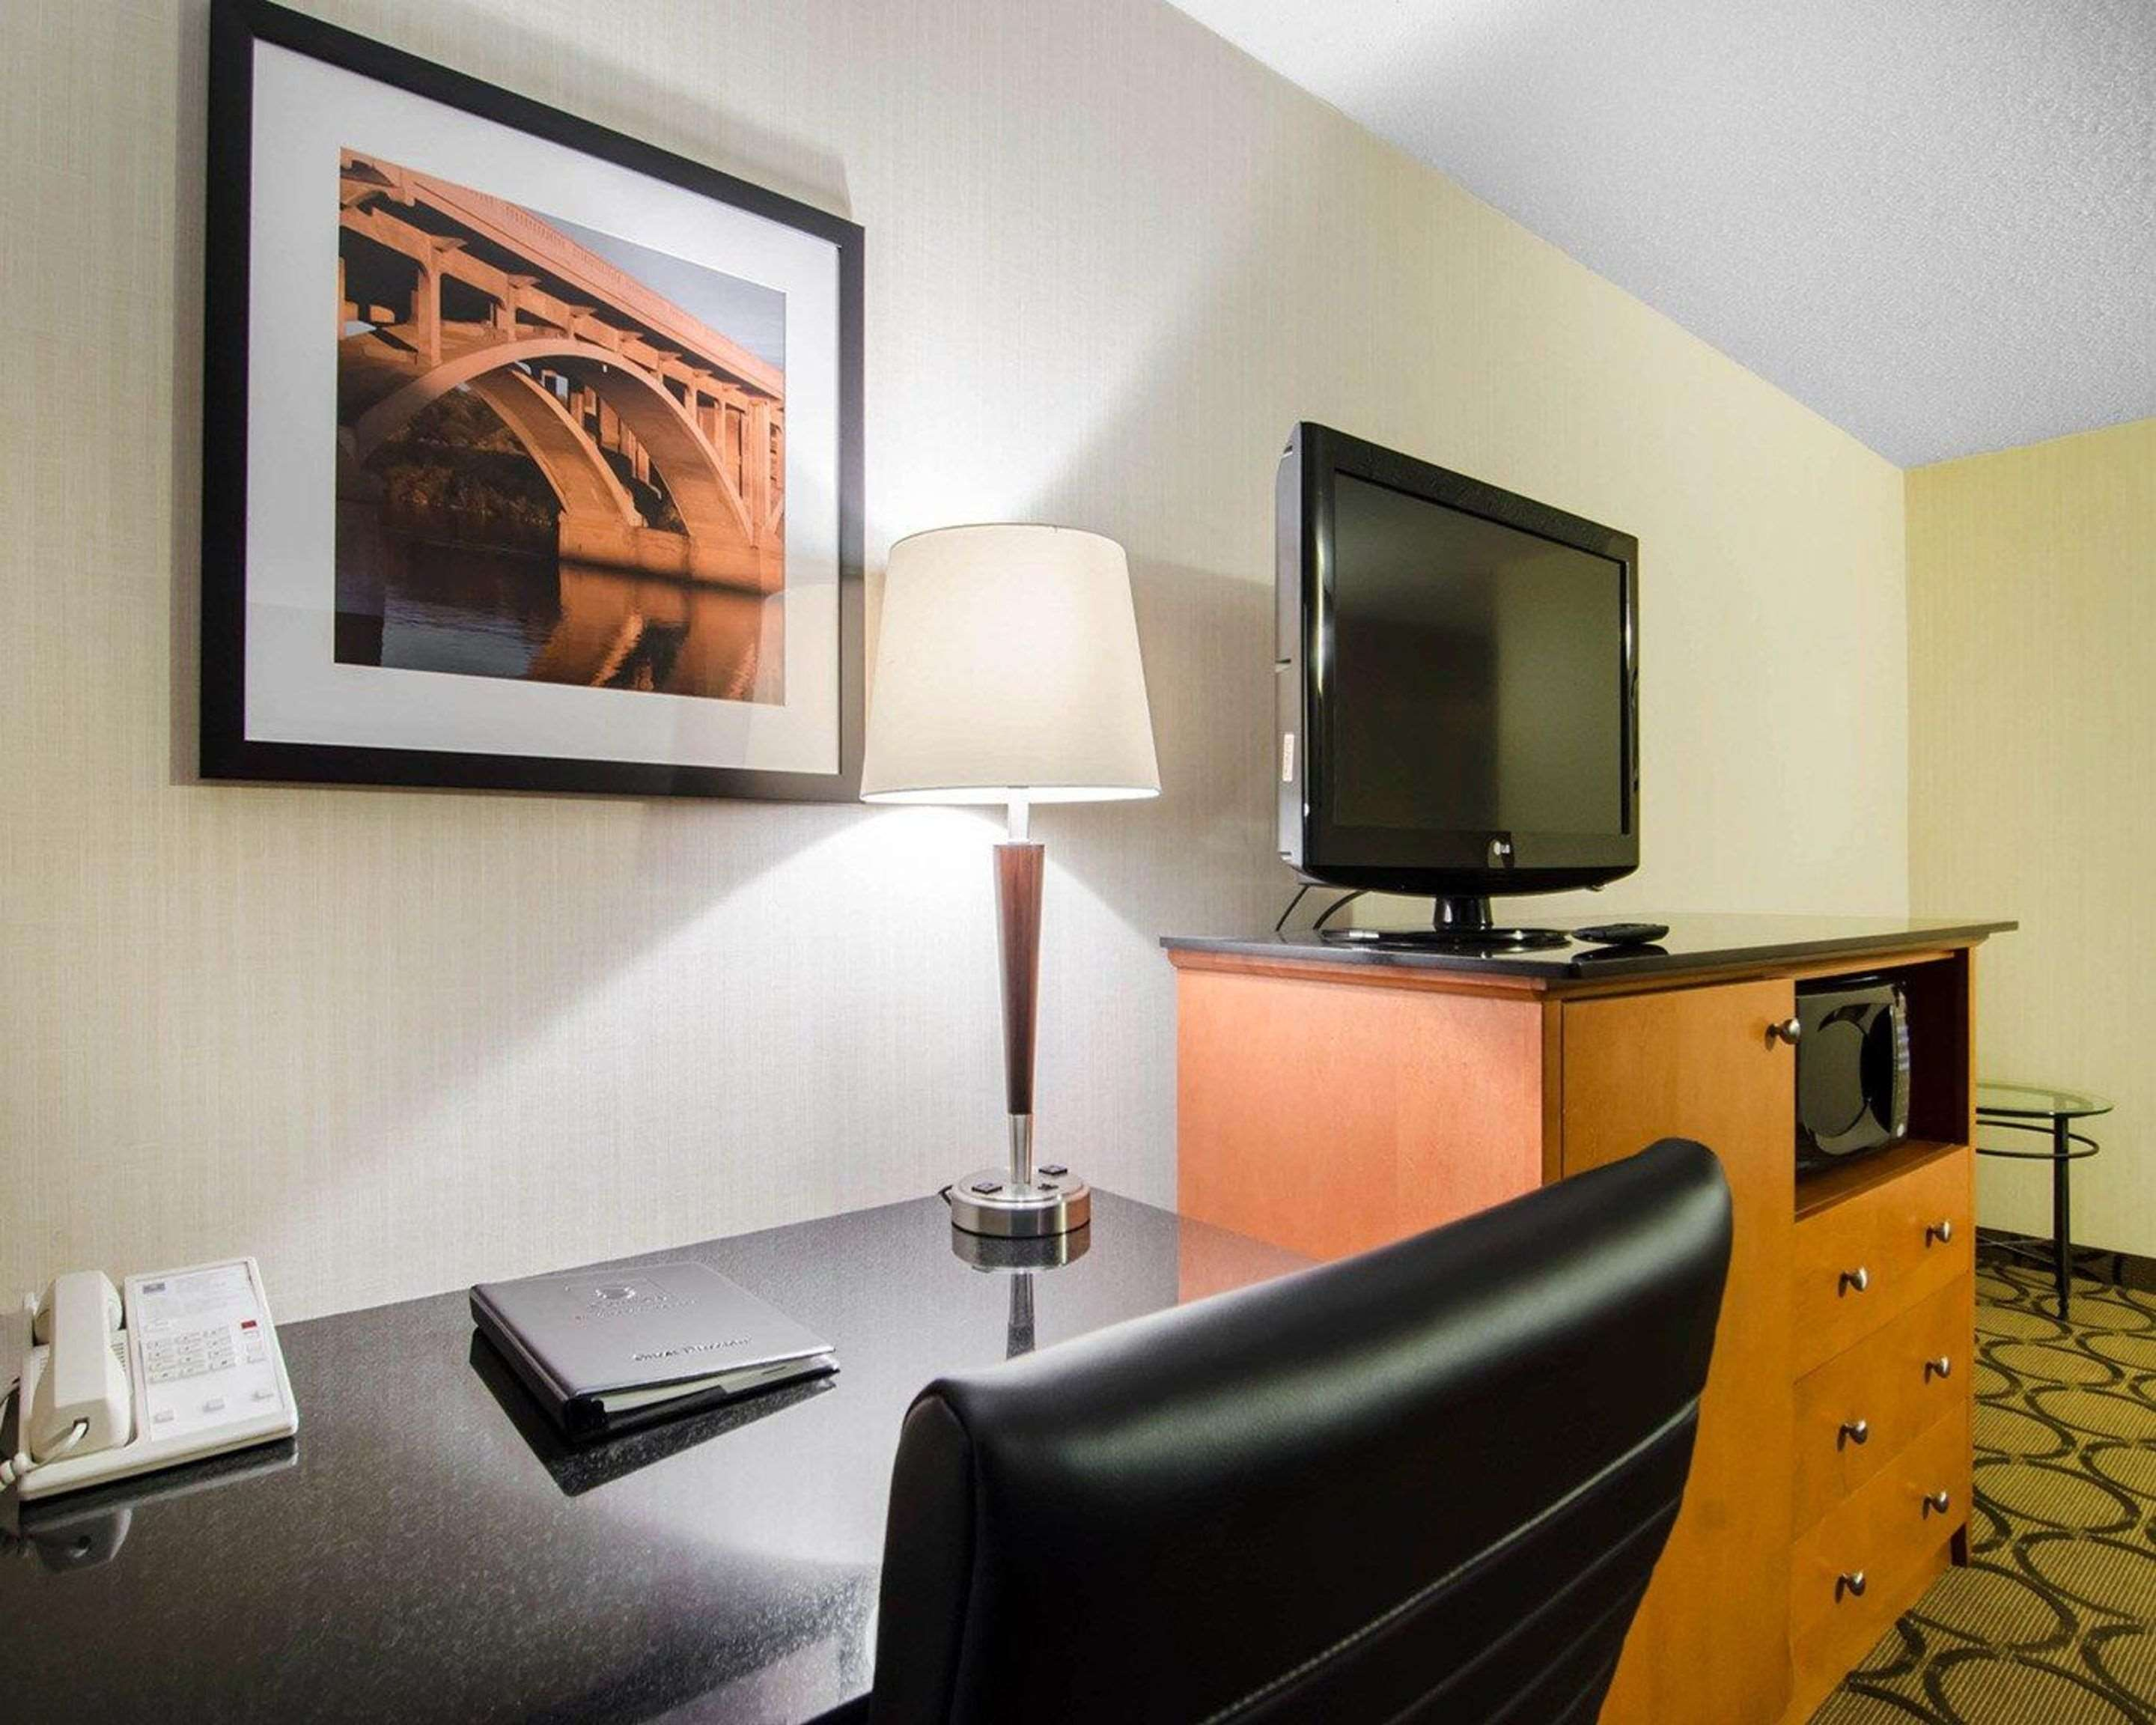 Comfort Inn in Saskatoon: Guest room with flat-screen television